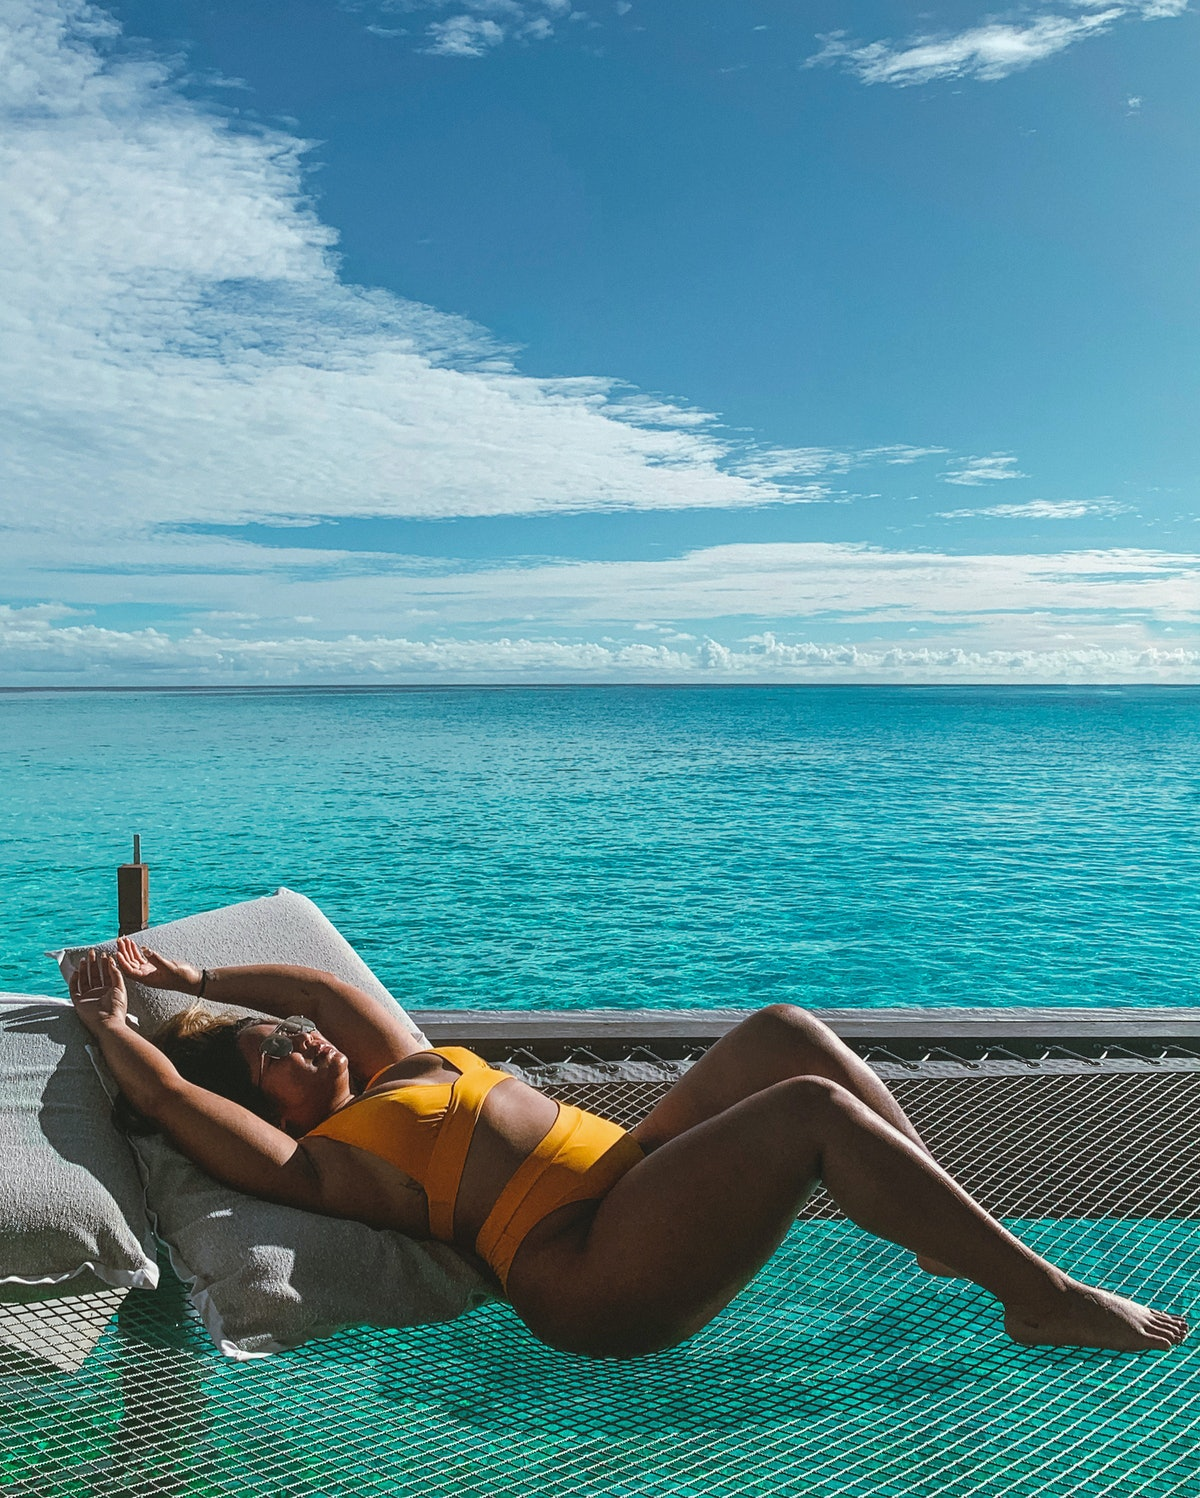 A woman in an orange high-waist bikini relaxes on an over-water net, overlooking a turquoise ocean with a blue sky in the background.